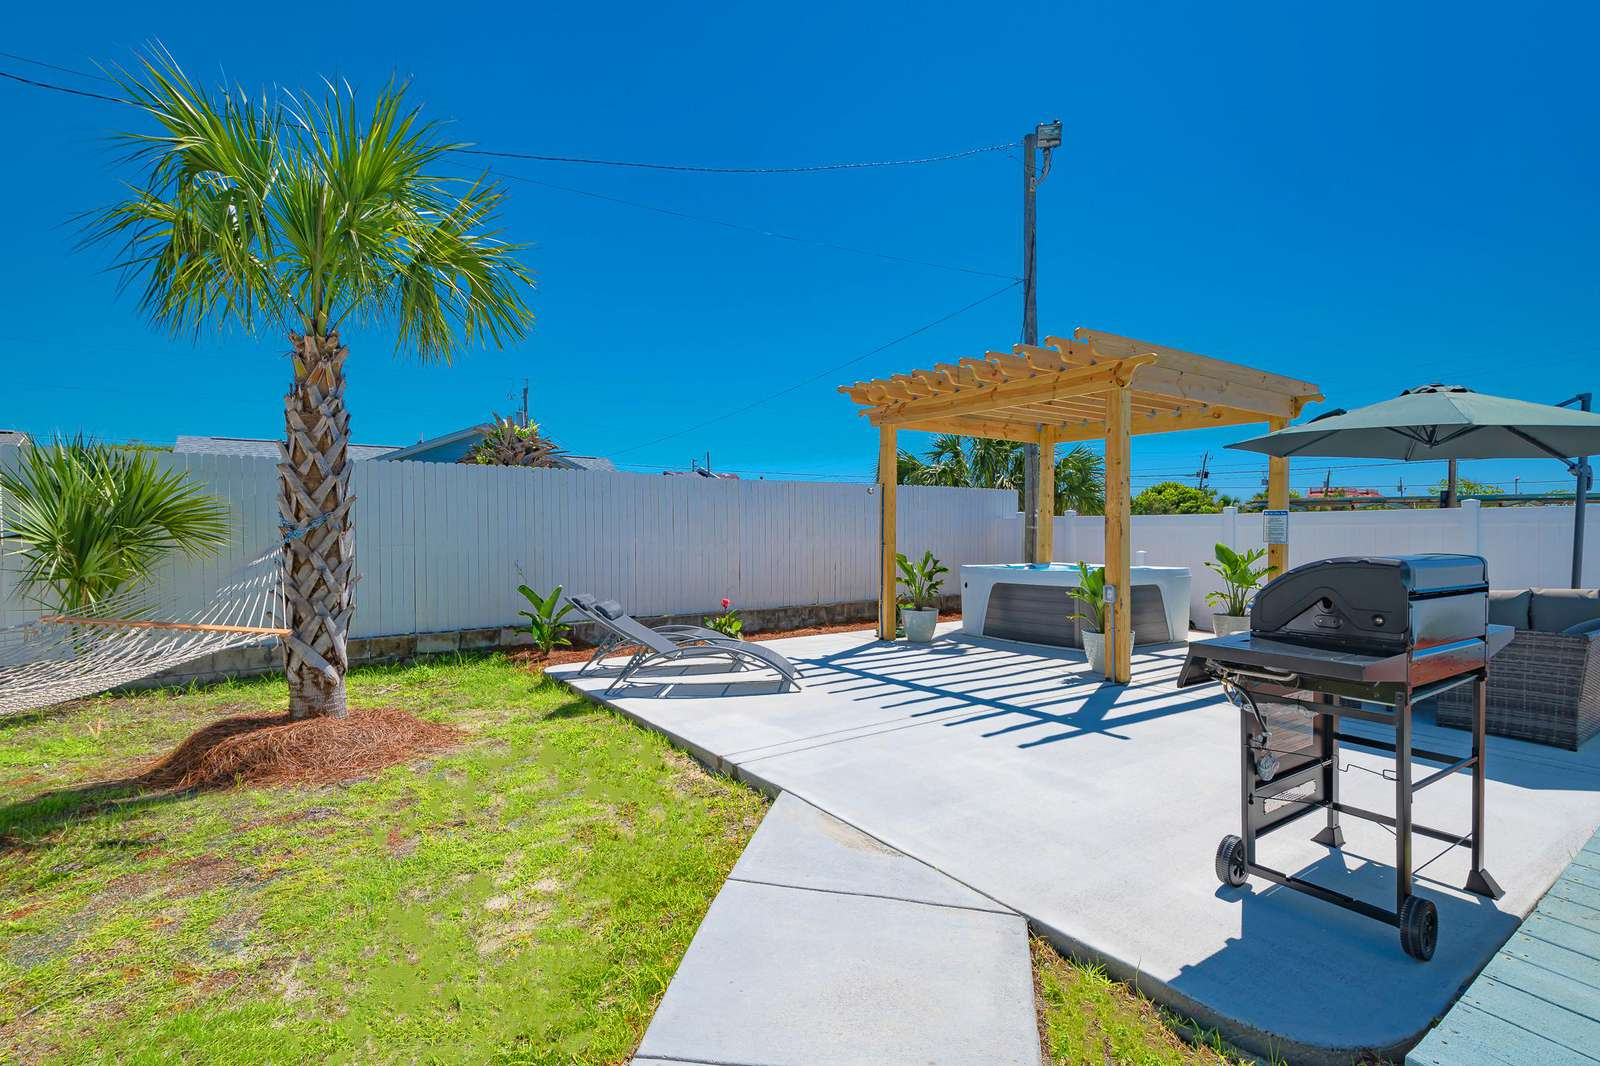 Large gas grill and lounging areas!